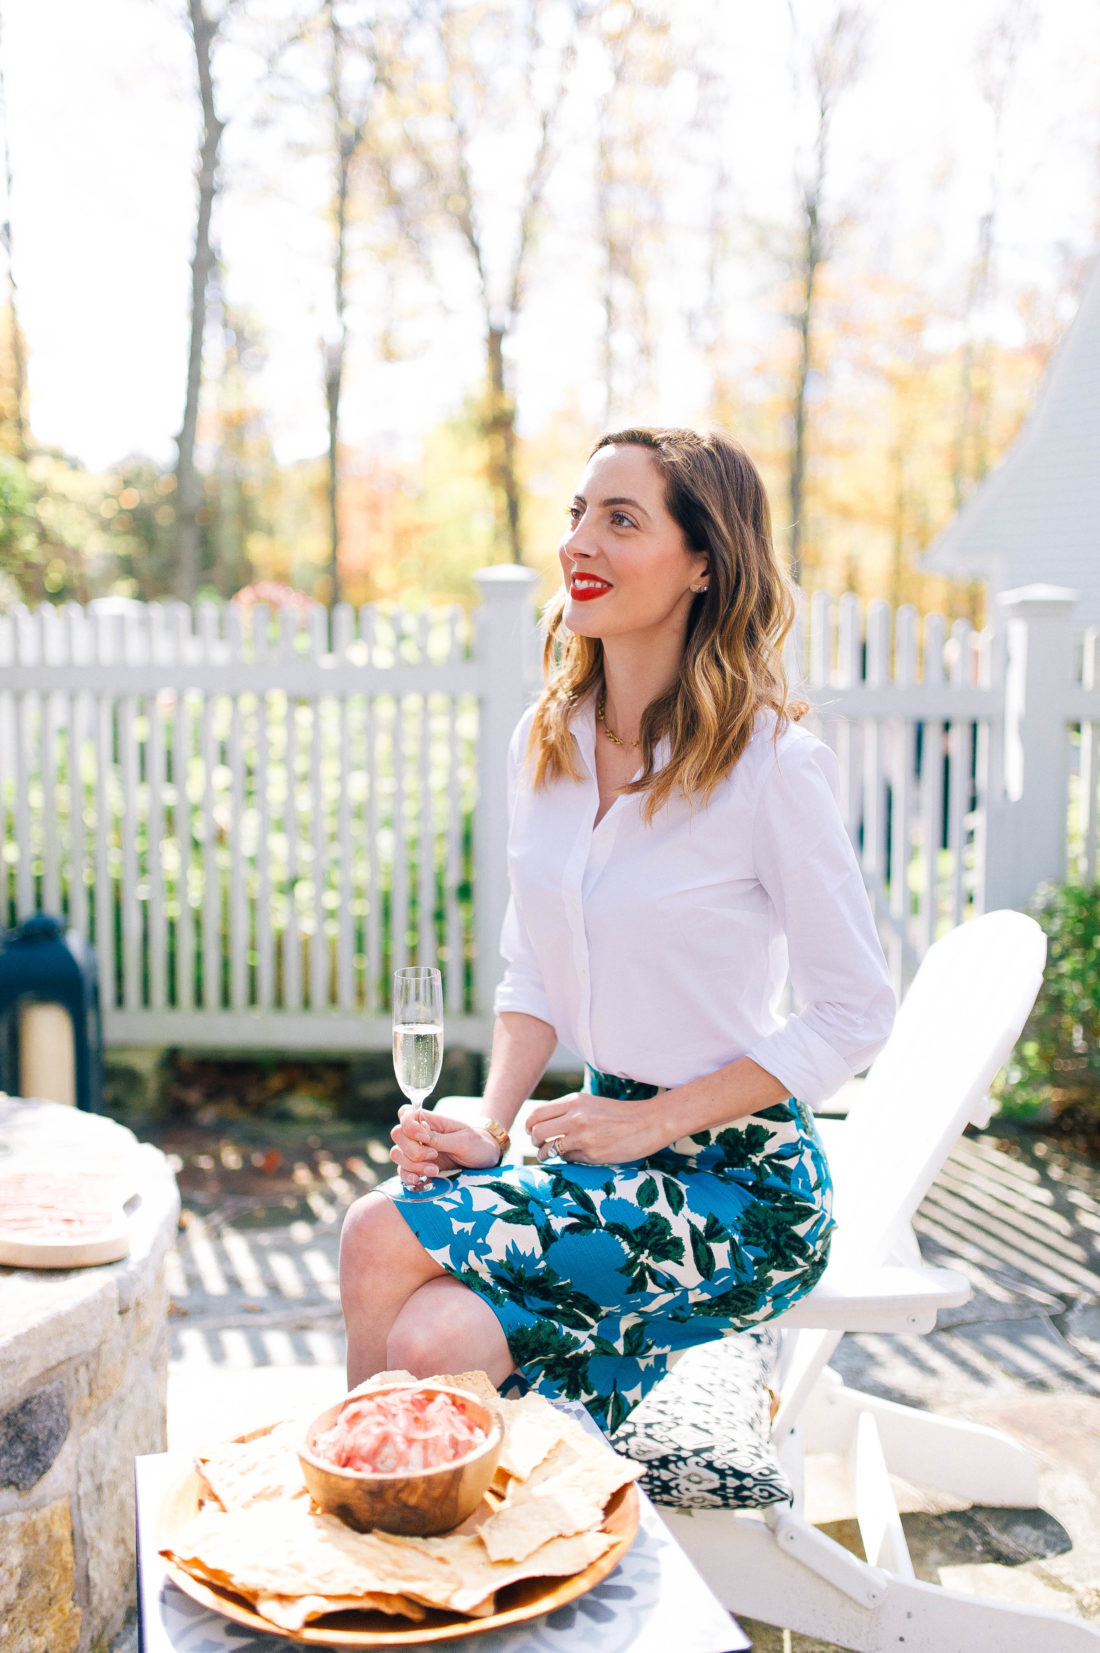 Eva Amurri Martino sits beside the fire pit at a party at her home, holding a glass of champagne and wearing a floral pencil skirt and red lipstick